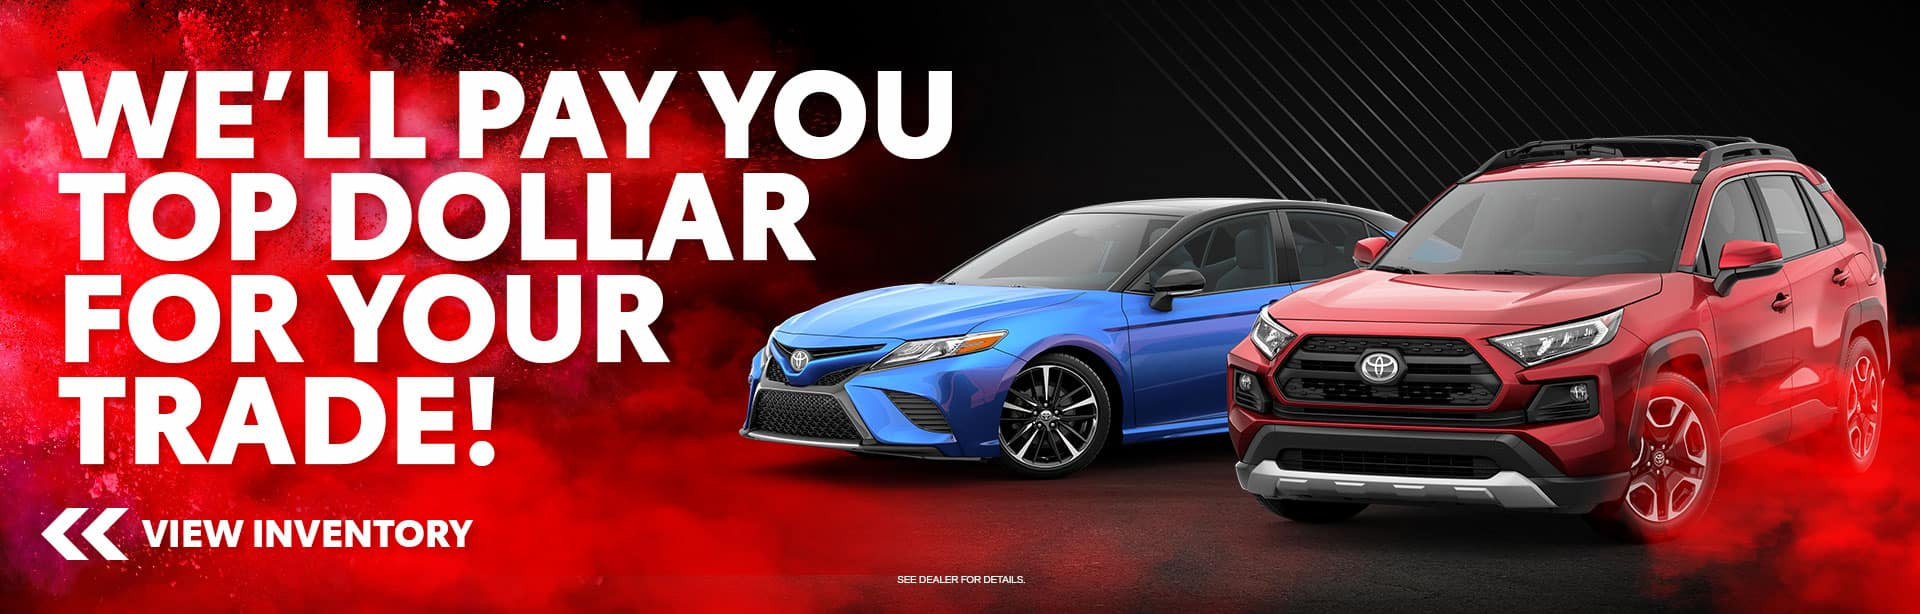 We'll Pay You Top Dollar for Your Trade at Bev Smith Toyota!